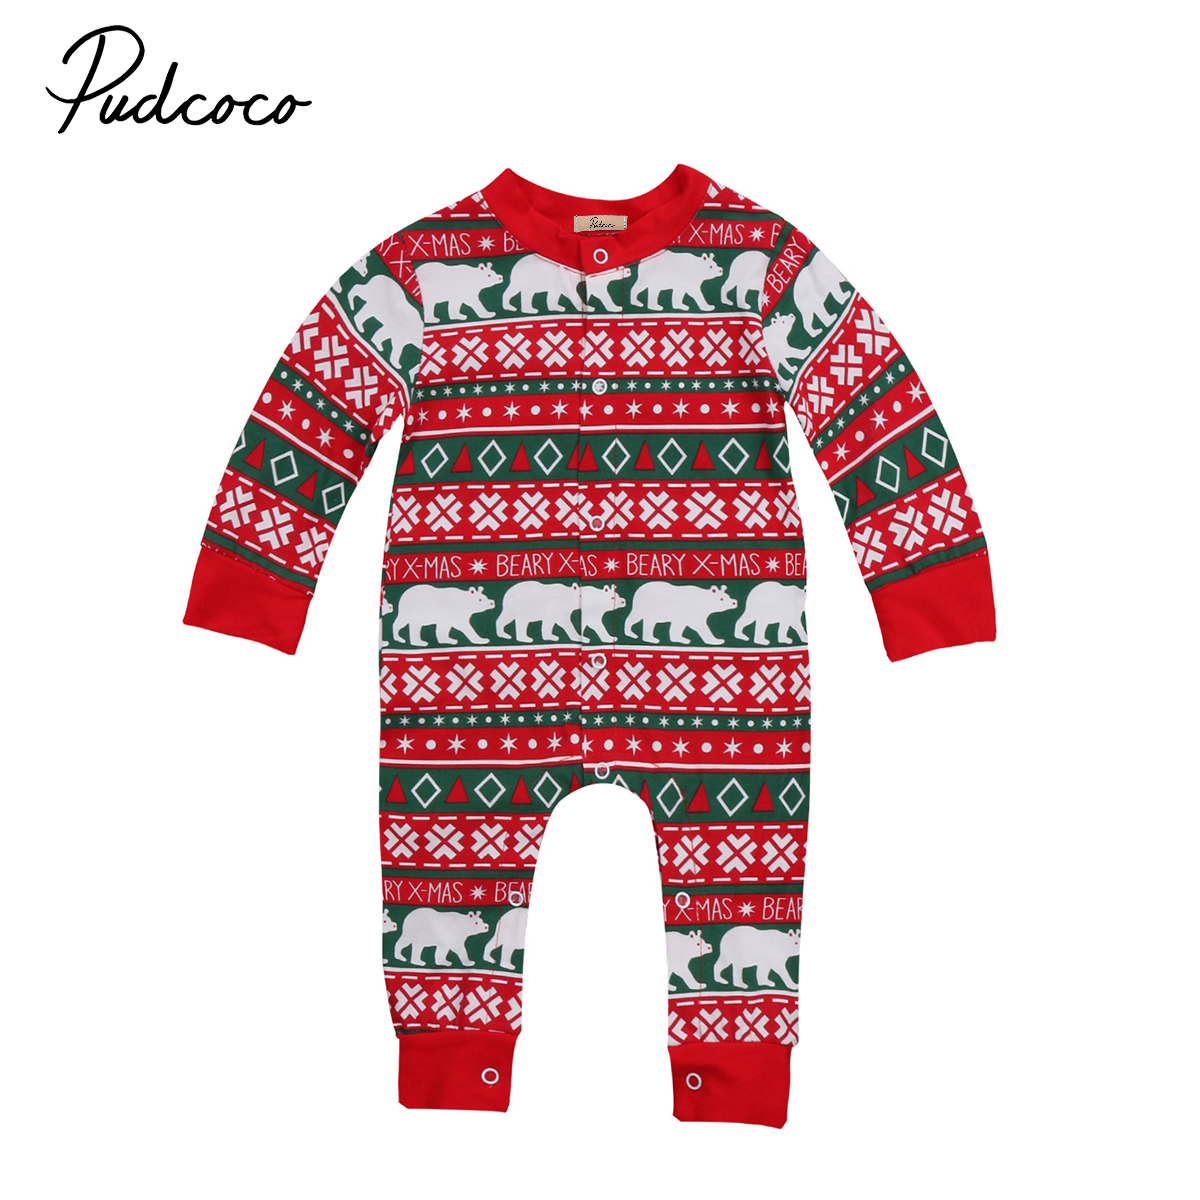 Autumn Winter Warm Newborn Baby Long Sleeve Rompers Christmas Romper Infant Boy Girl Jumpsuit Kids Clothes Outfits Age 0-24M summer newborn infant baby girl romper short sleeve floral romper jumpsuit outfits sunsuit clothes